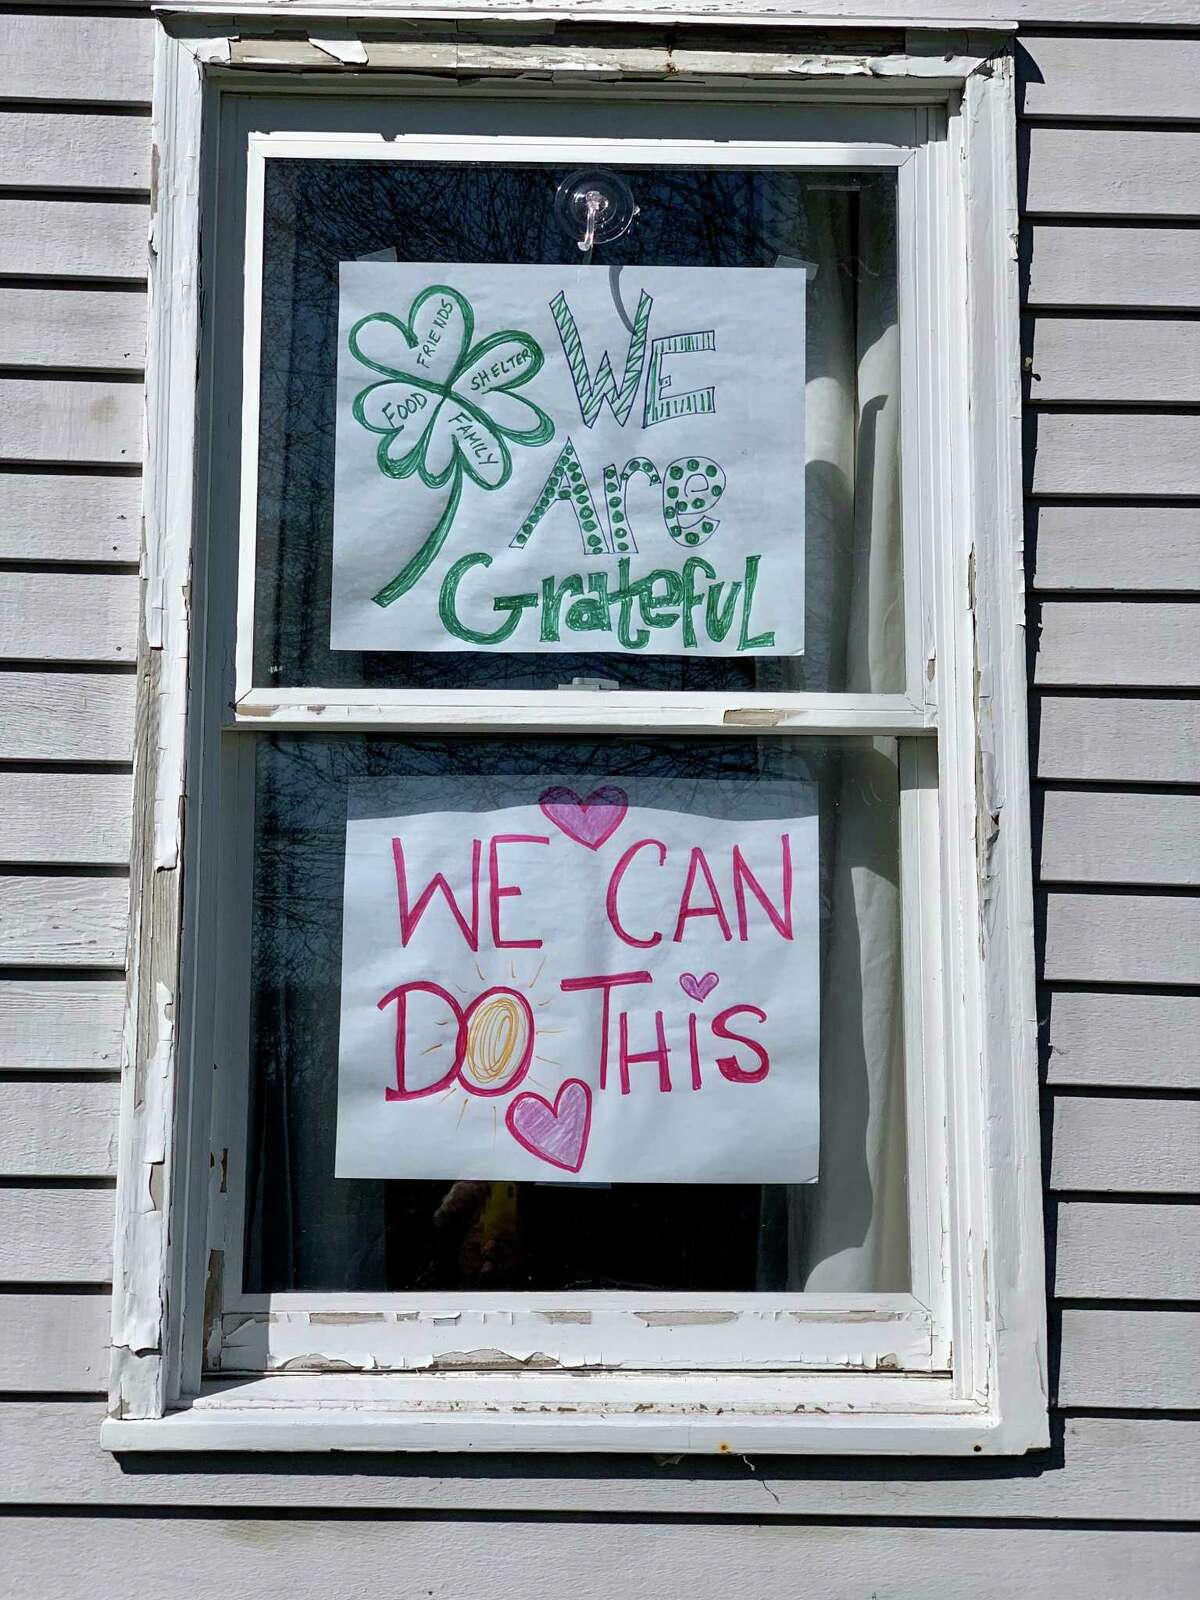 Nicole Lyons and her children - Liam, 12 and Brinley. 9, have shared encouraging messages in the windows of their Darien home.